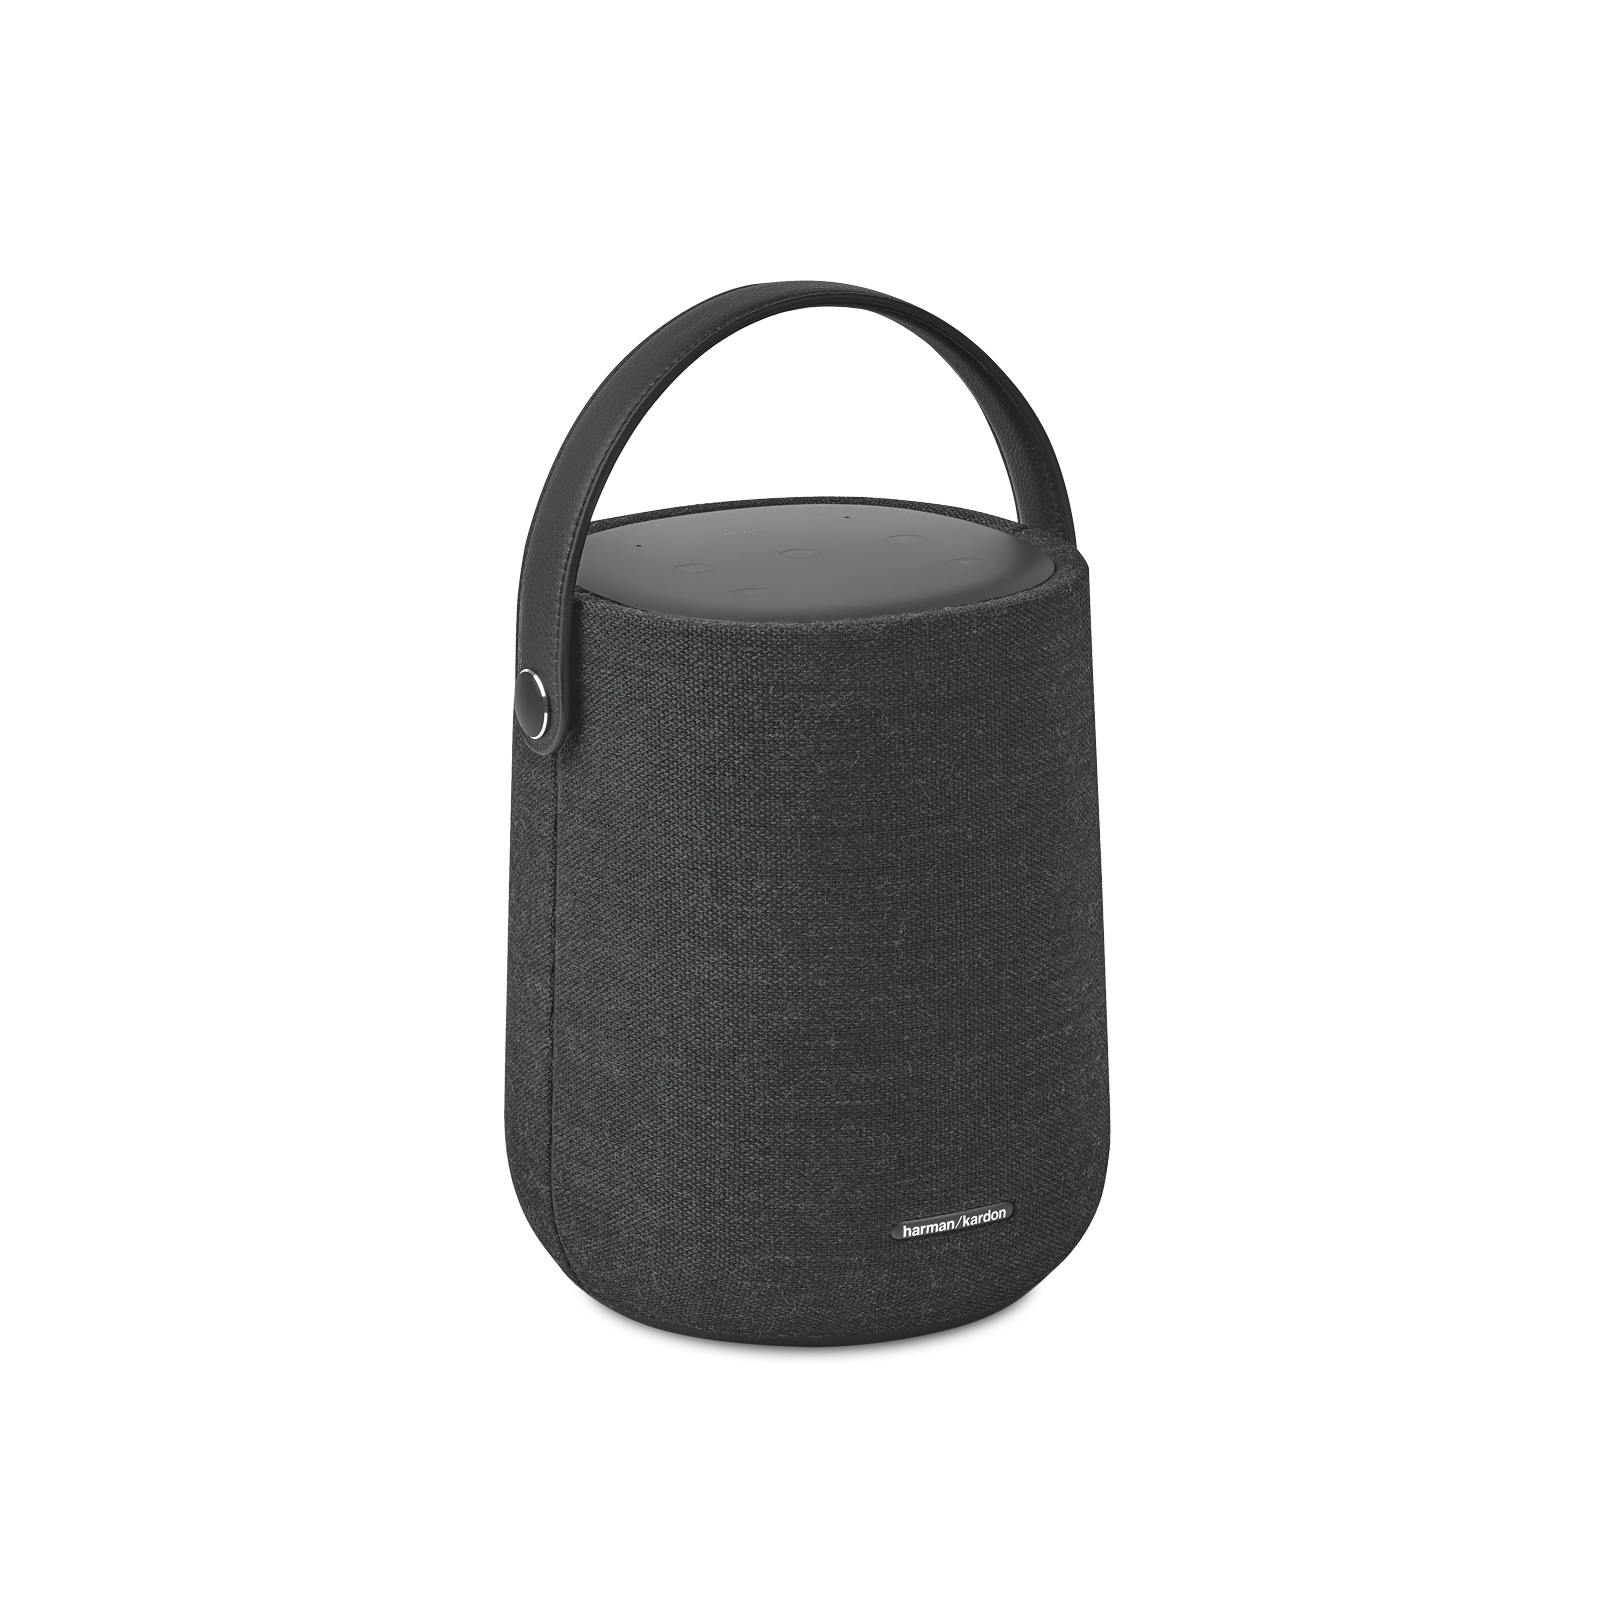 Harman Kardon Citation 200 - Black - Portable smart speaker for HD sound - Hero